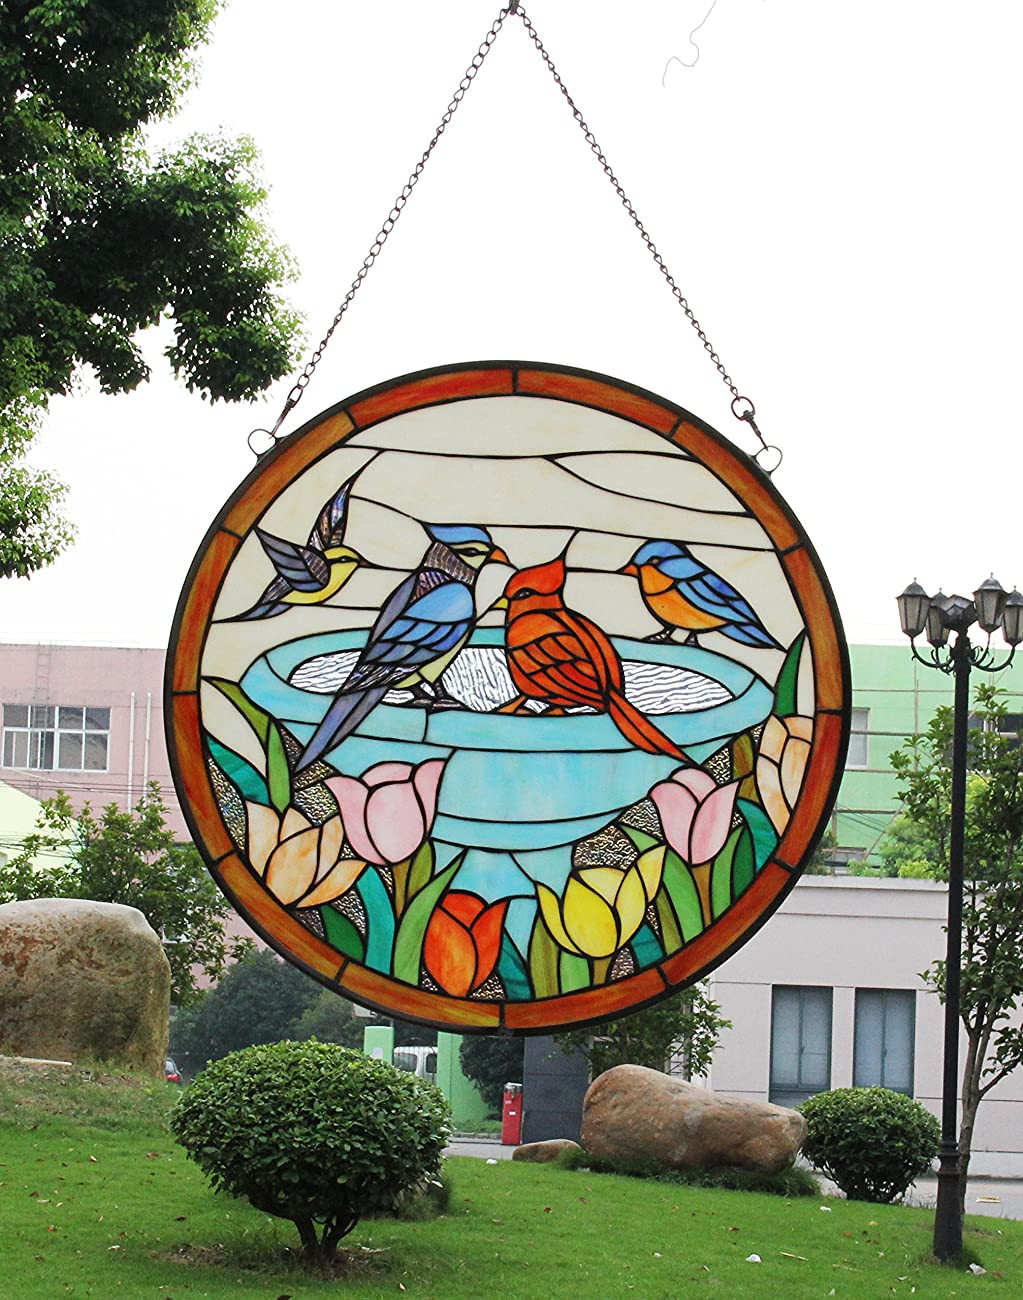 Makenier Vintage Tiffany Style Stained Church Art Glass Parrot and Tulip Round Window Panel Wall Hanging 4